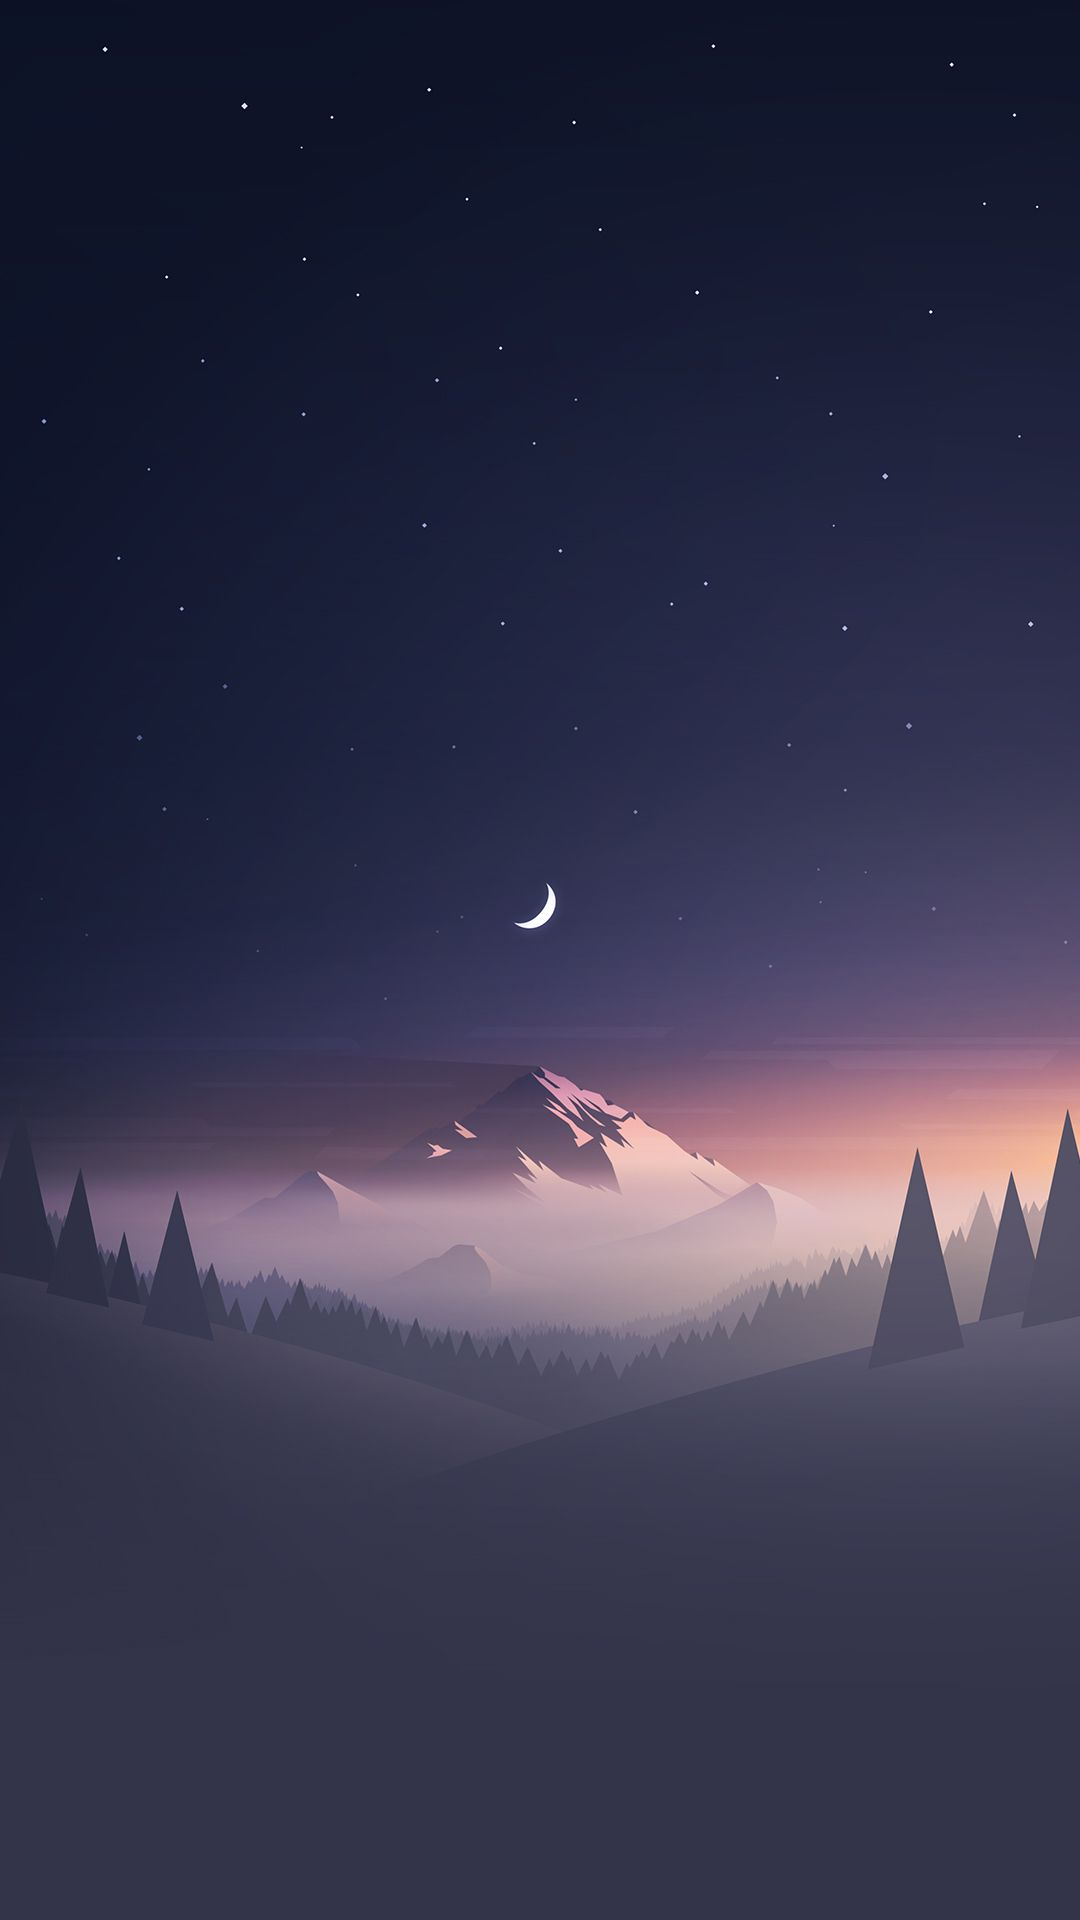 One Love Iphone Wallpaper : Stars And Moon Winter Mountain Landscape #iPhone #6 # ...